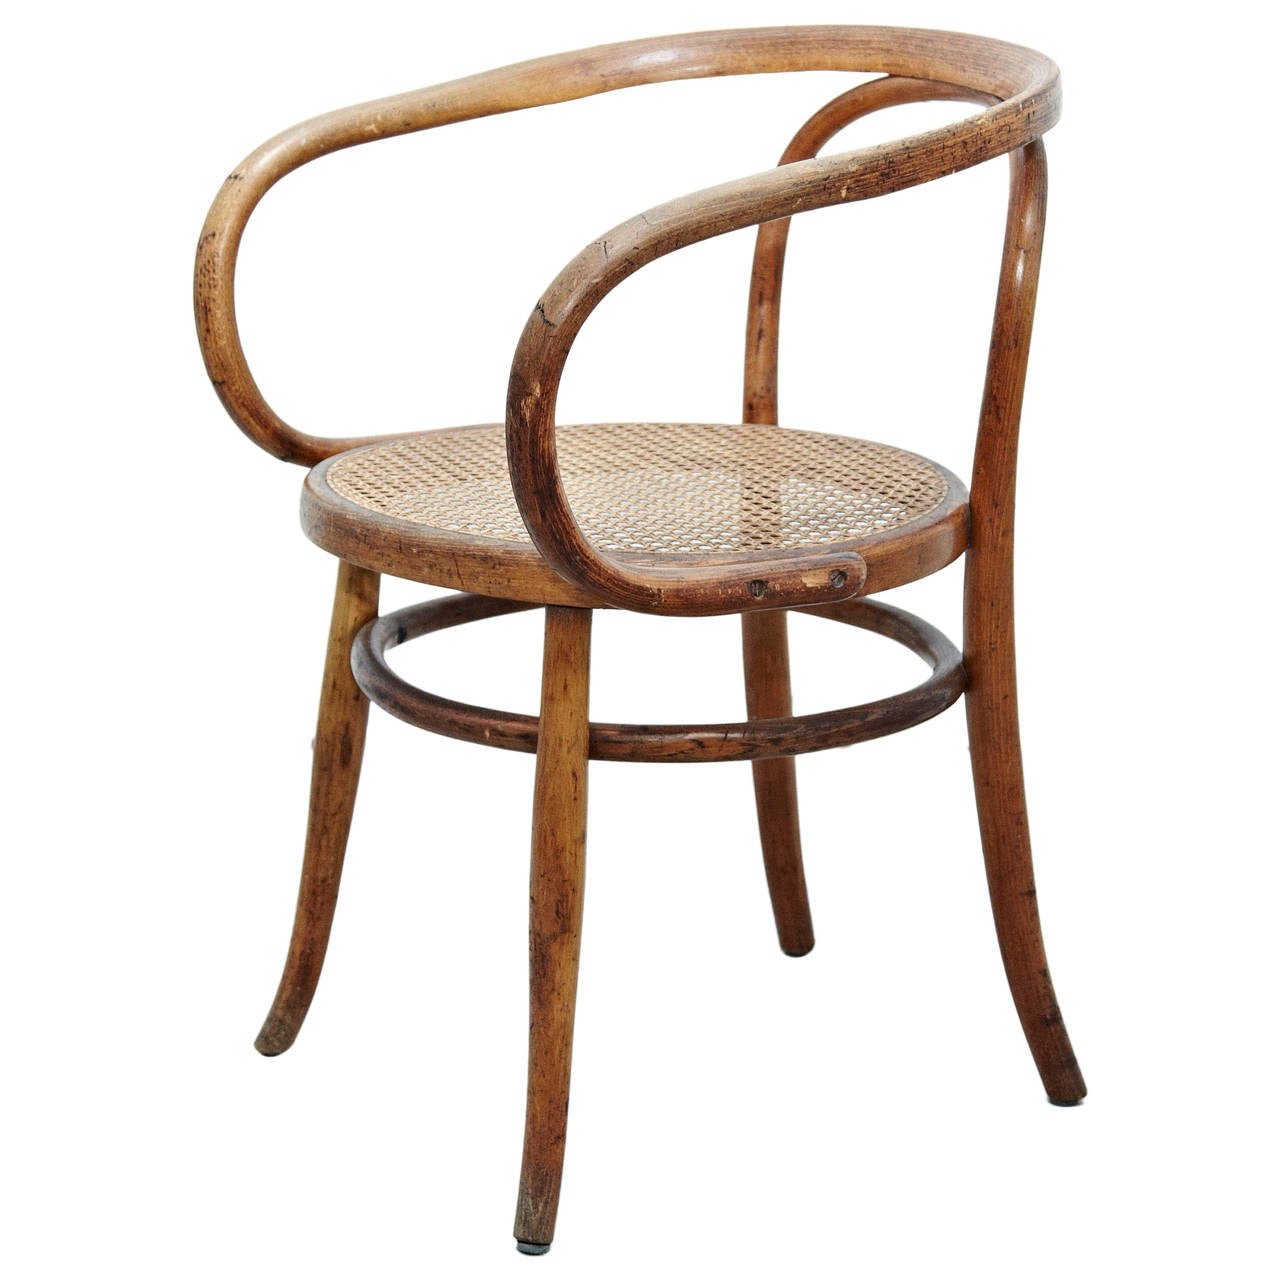 Bent Wood Chairs Thonet 209 Armchair By Auguste Thonet For Thonet Circa